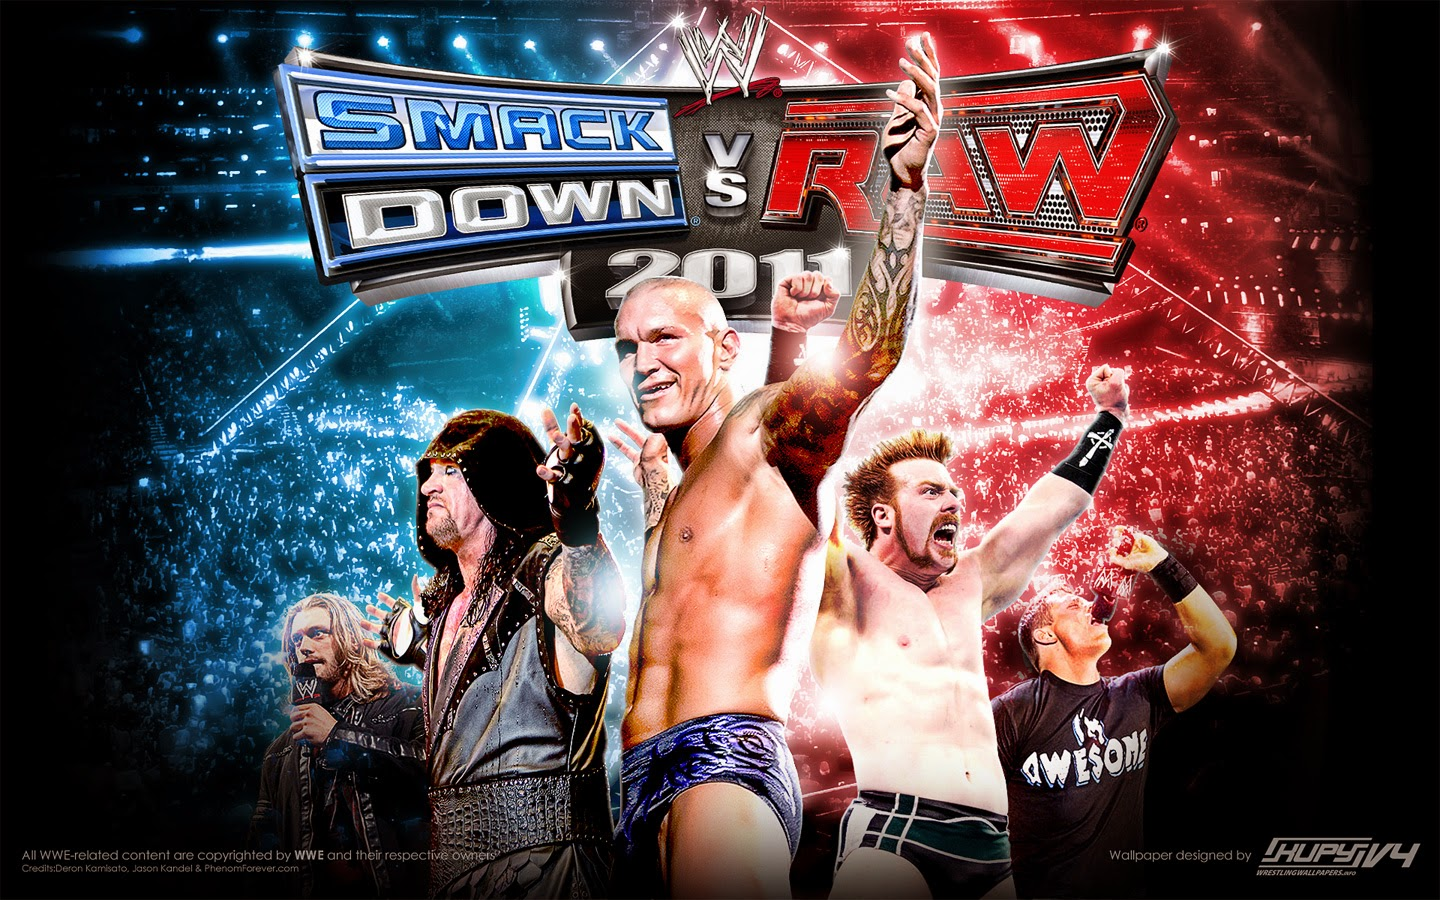 descargar WWE Smackdown Vs Raw para pc español